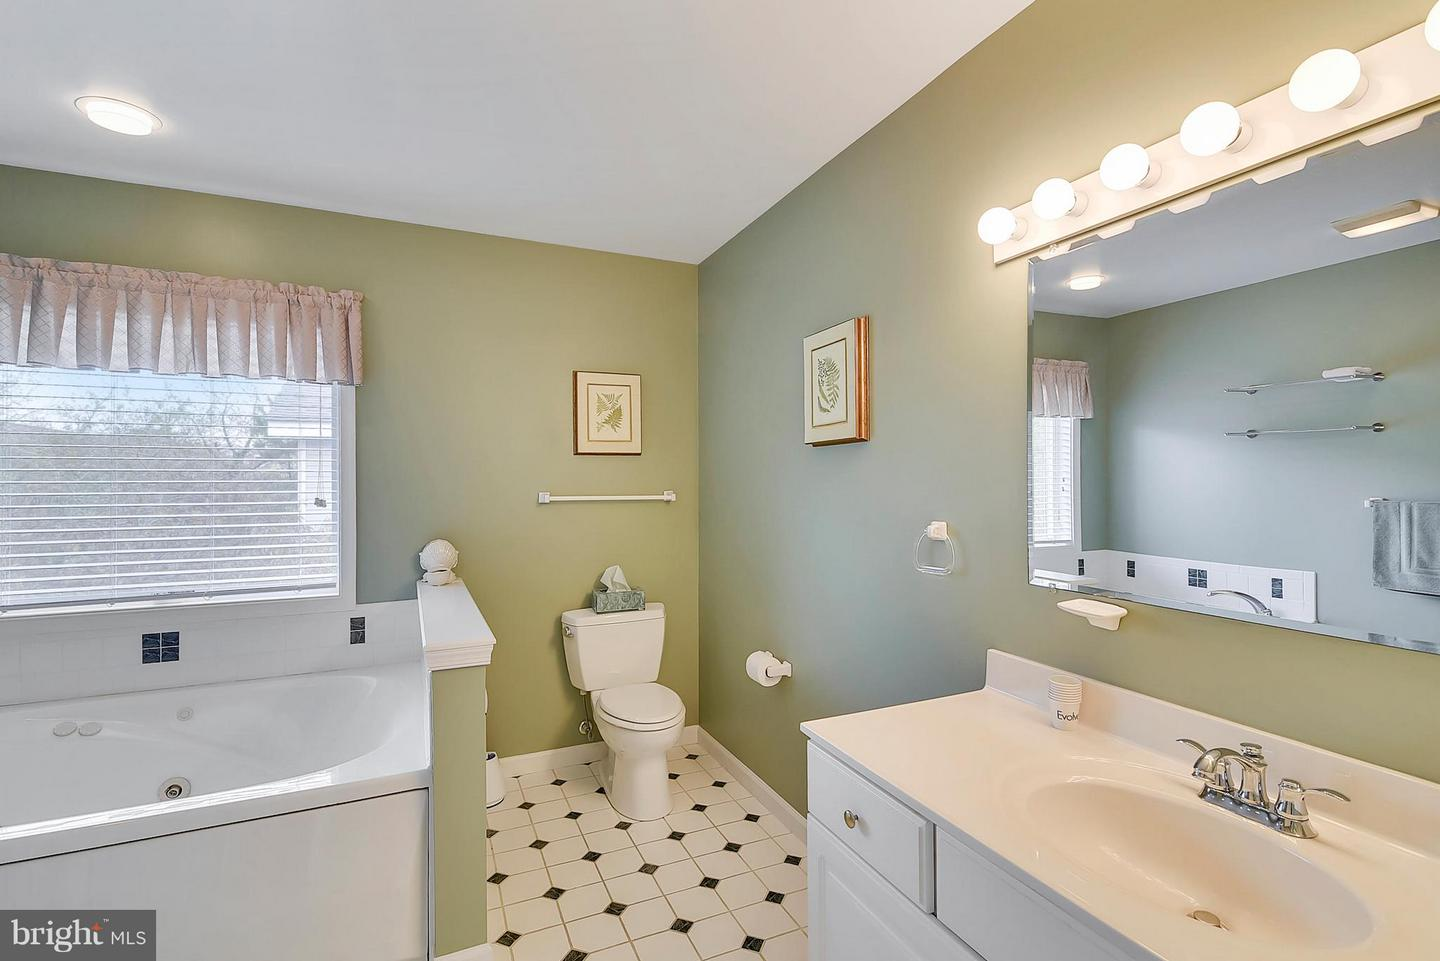 1002344128-300986988071-2018-11-07-14-16-58 39634 Seatrout Cir | North Bethany, DE Real Estate For Sale | MLS# 1002344128  - 1st Choice Properties